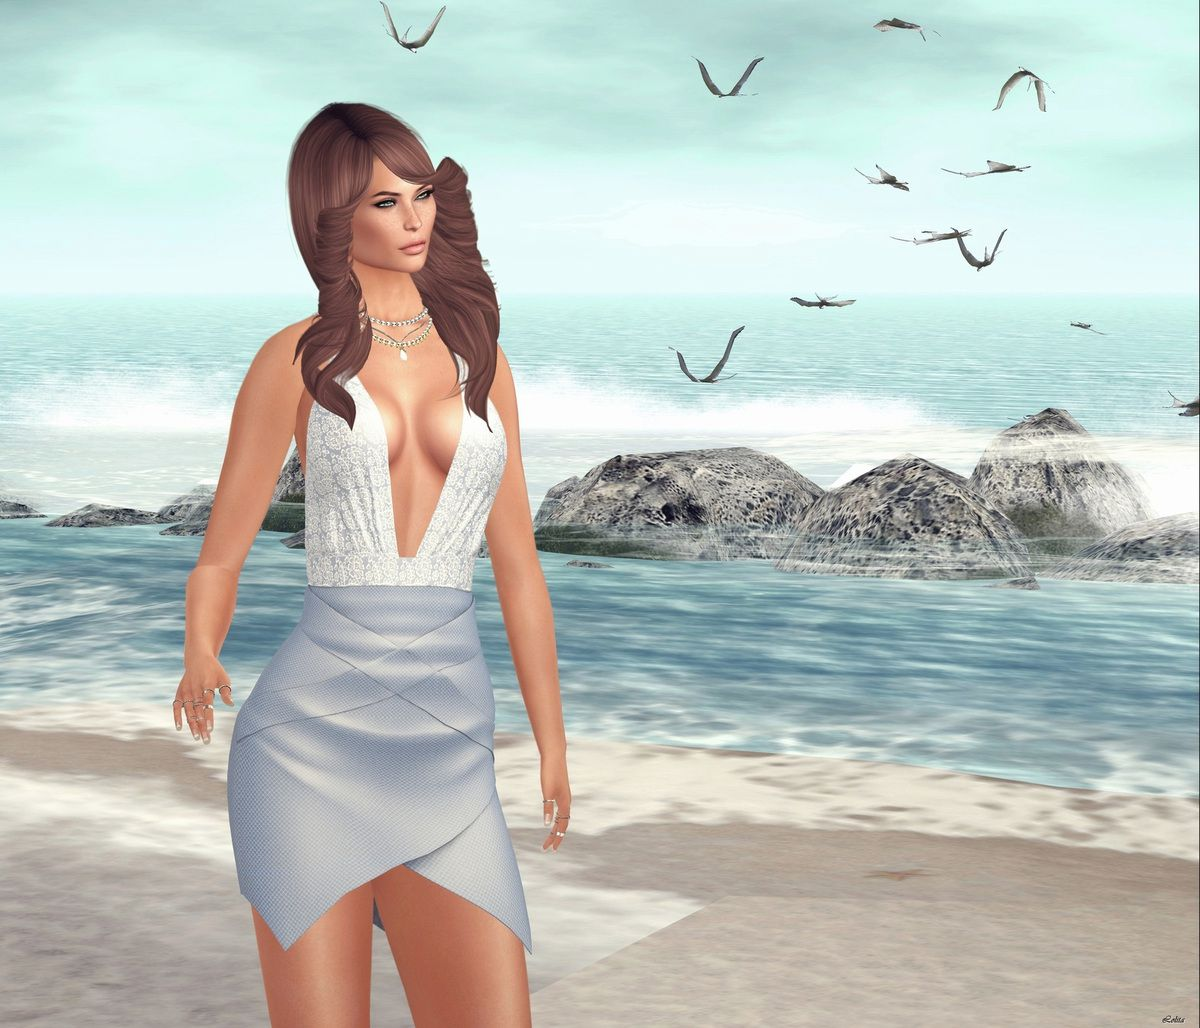 IM Collection - Luanes World - Scandalize - Tableau Vivant - GOS